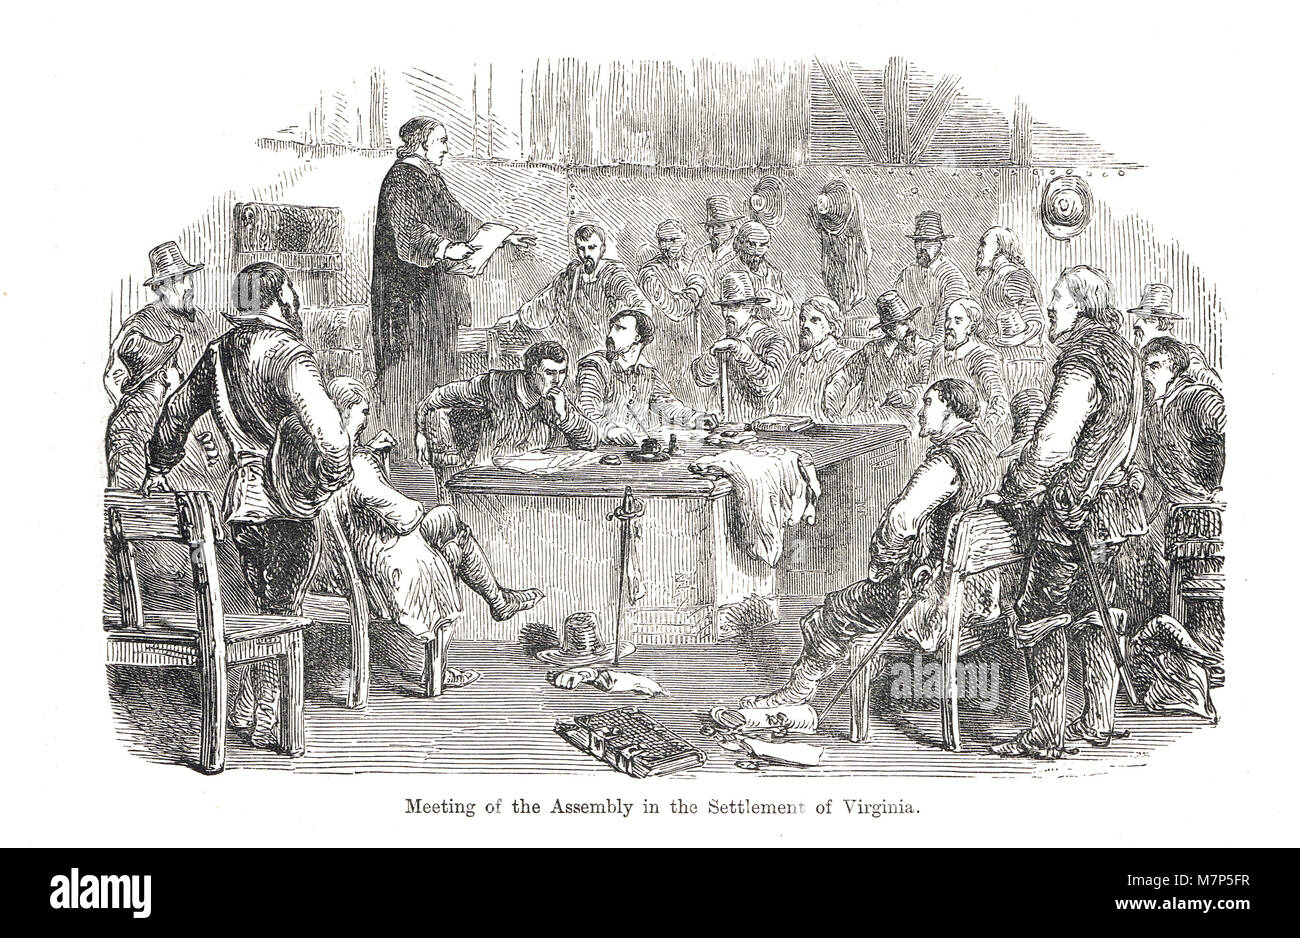 Meeting of the Assembly, settlement of Virginia, 1619, first assembly of the House of Burgesses. The first elected - Stock Image